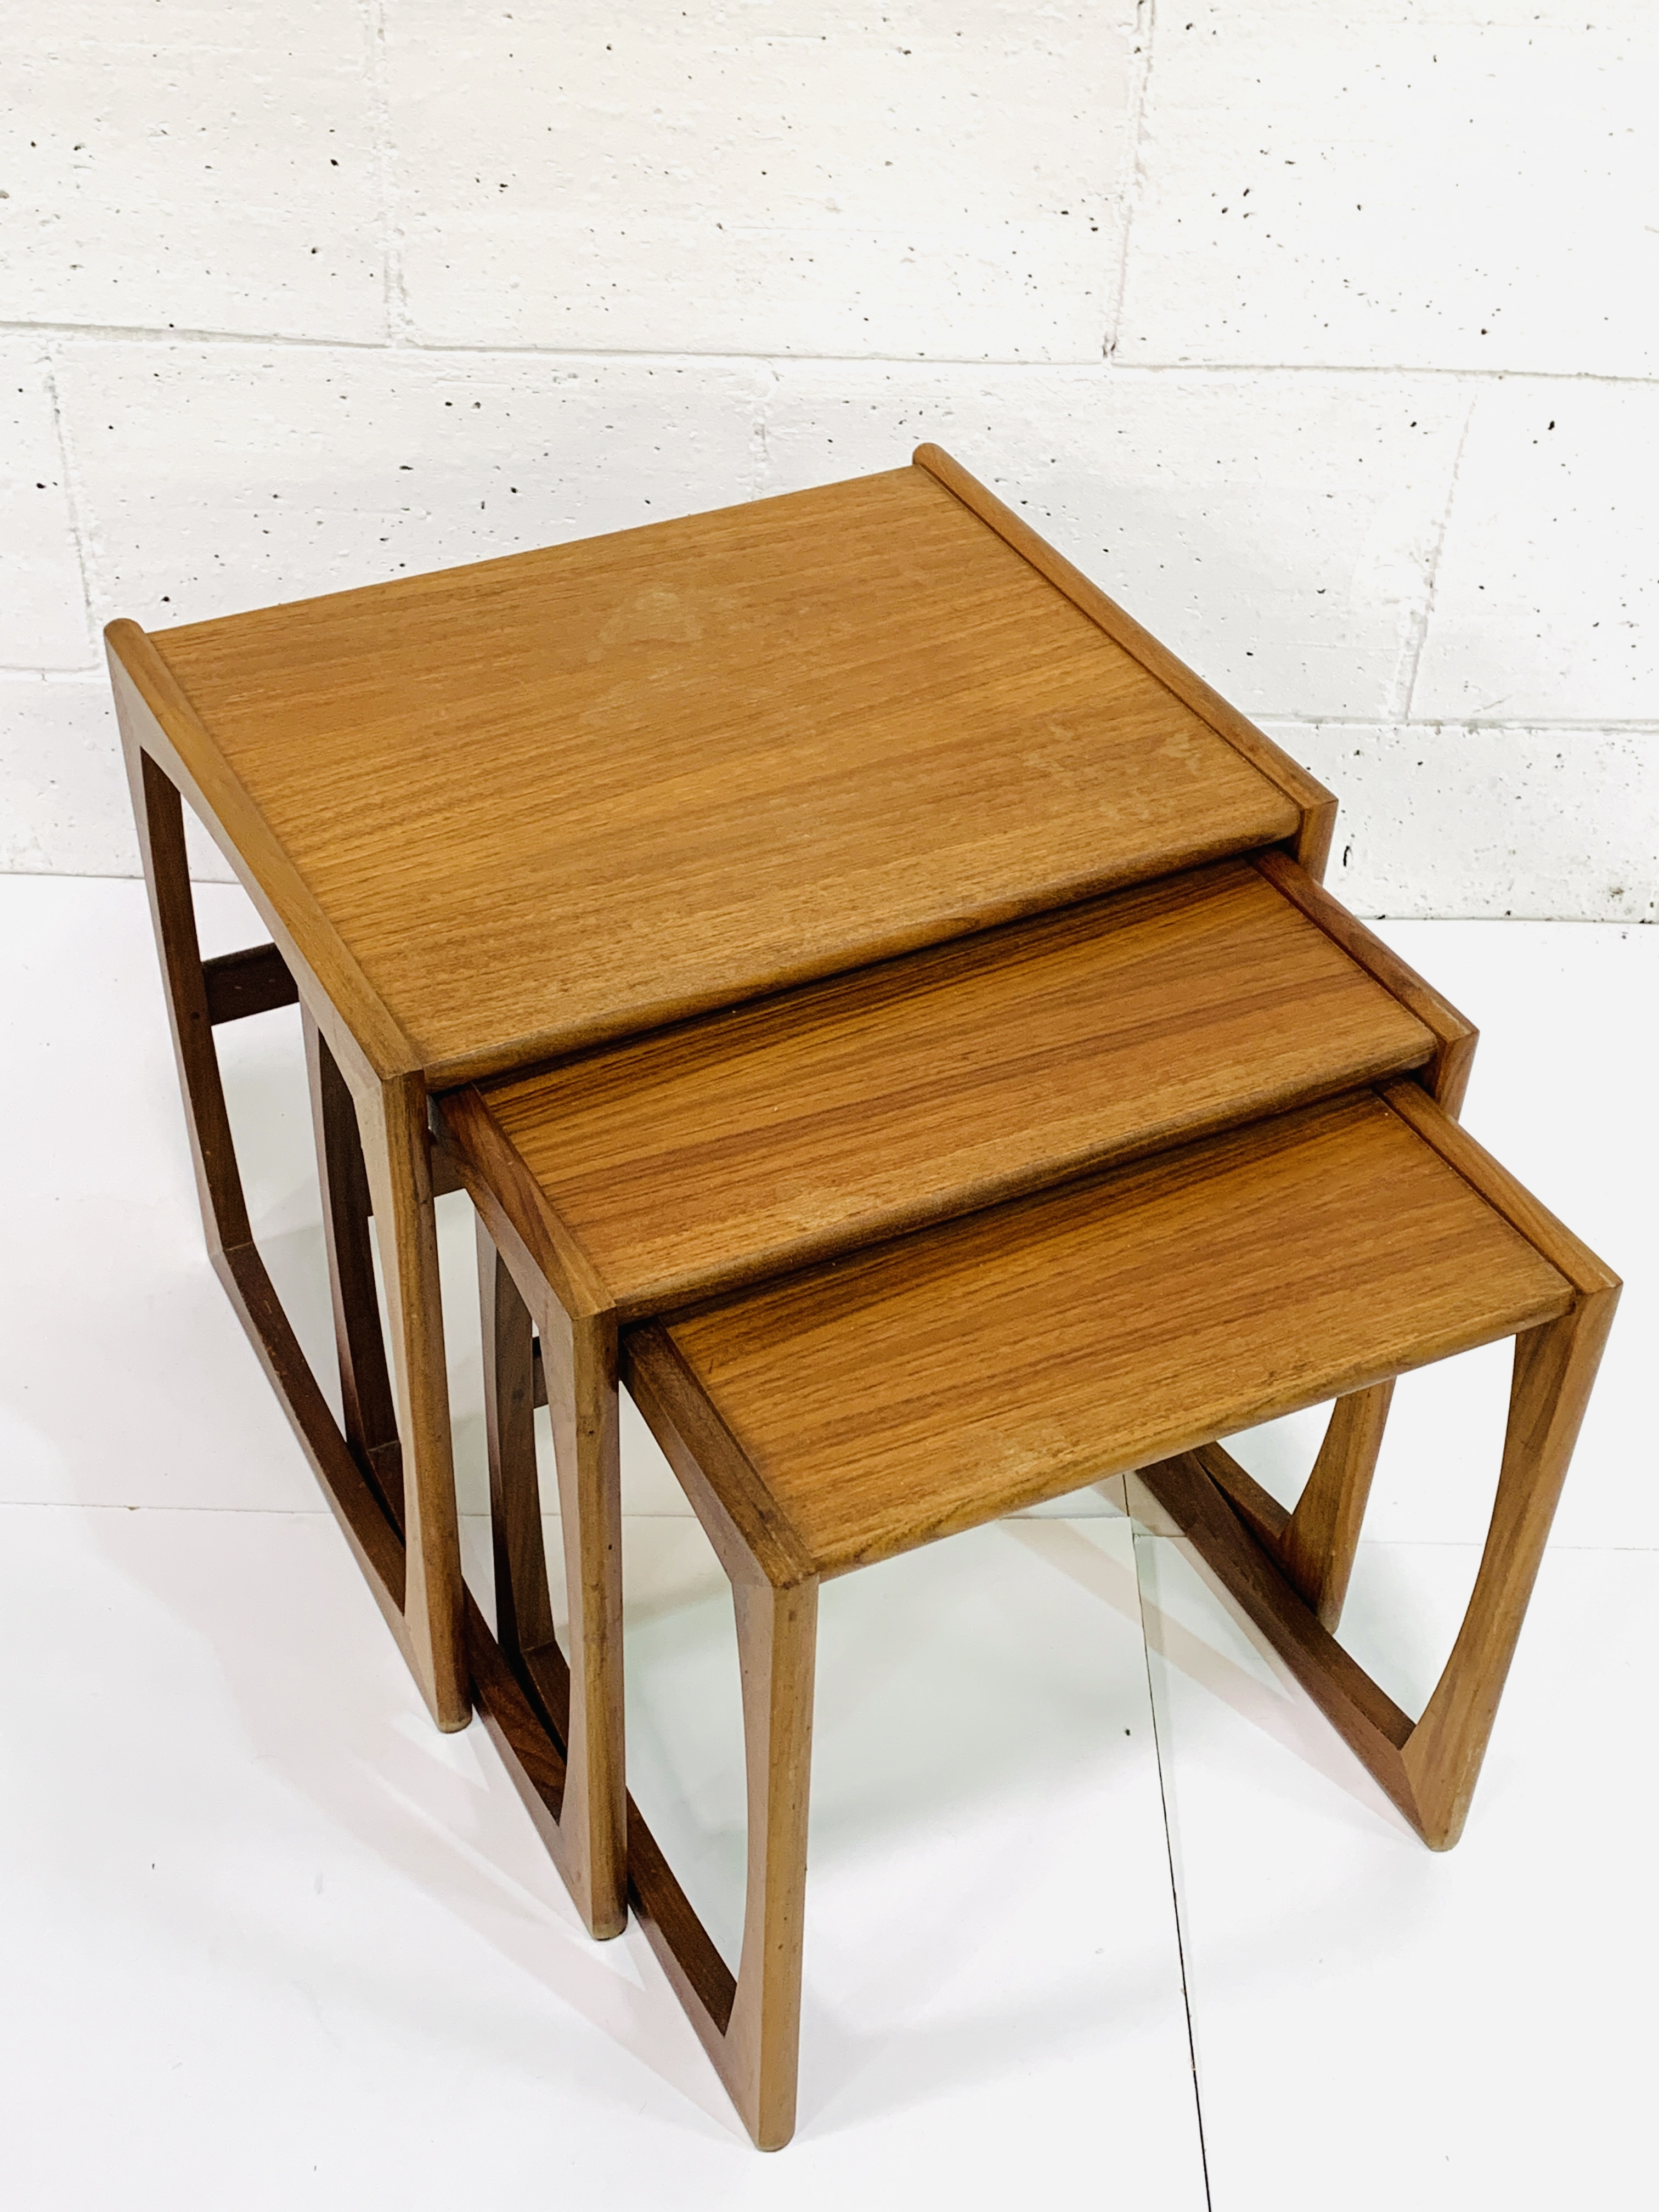 Nest of three teak tables by G-Plan - Image 3 of 3